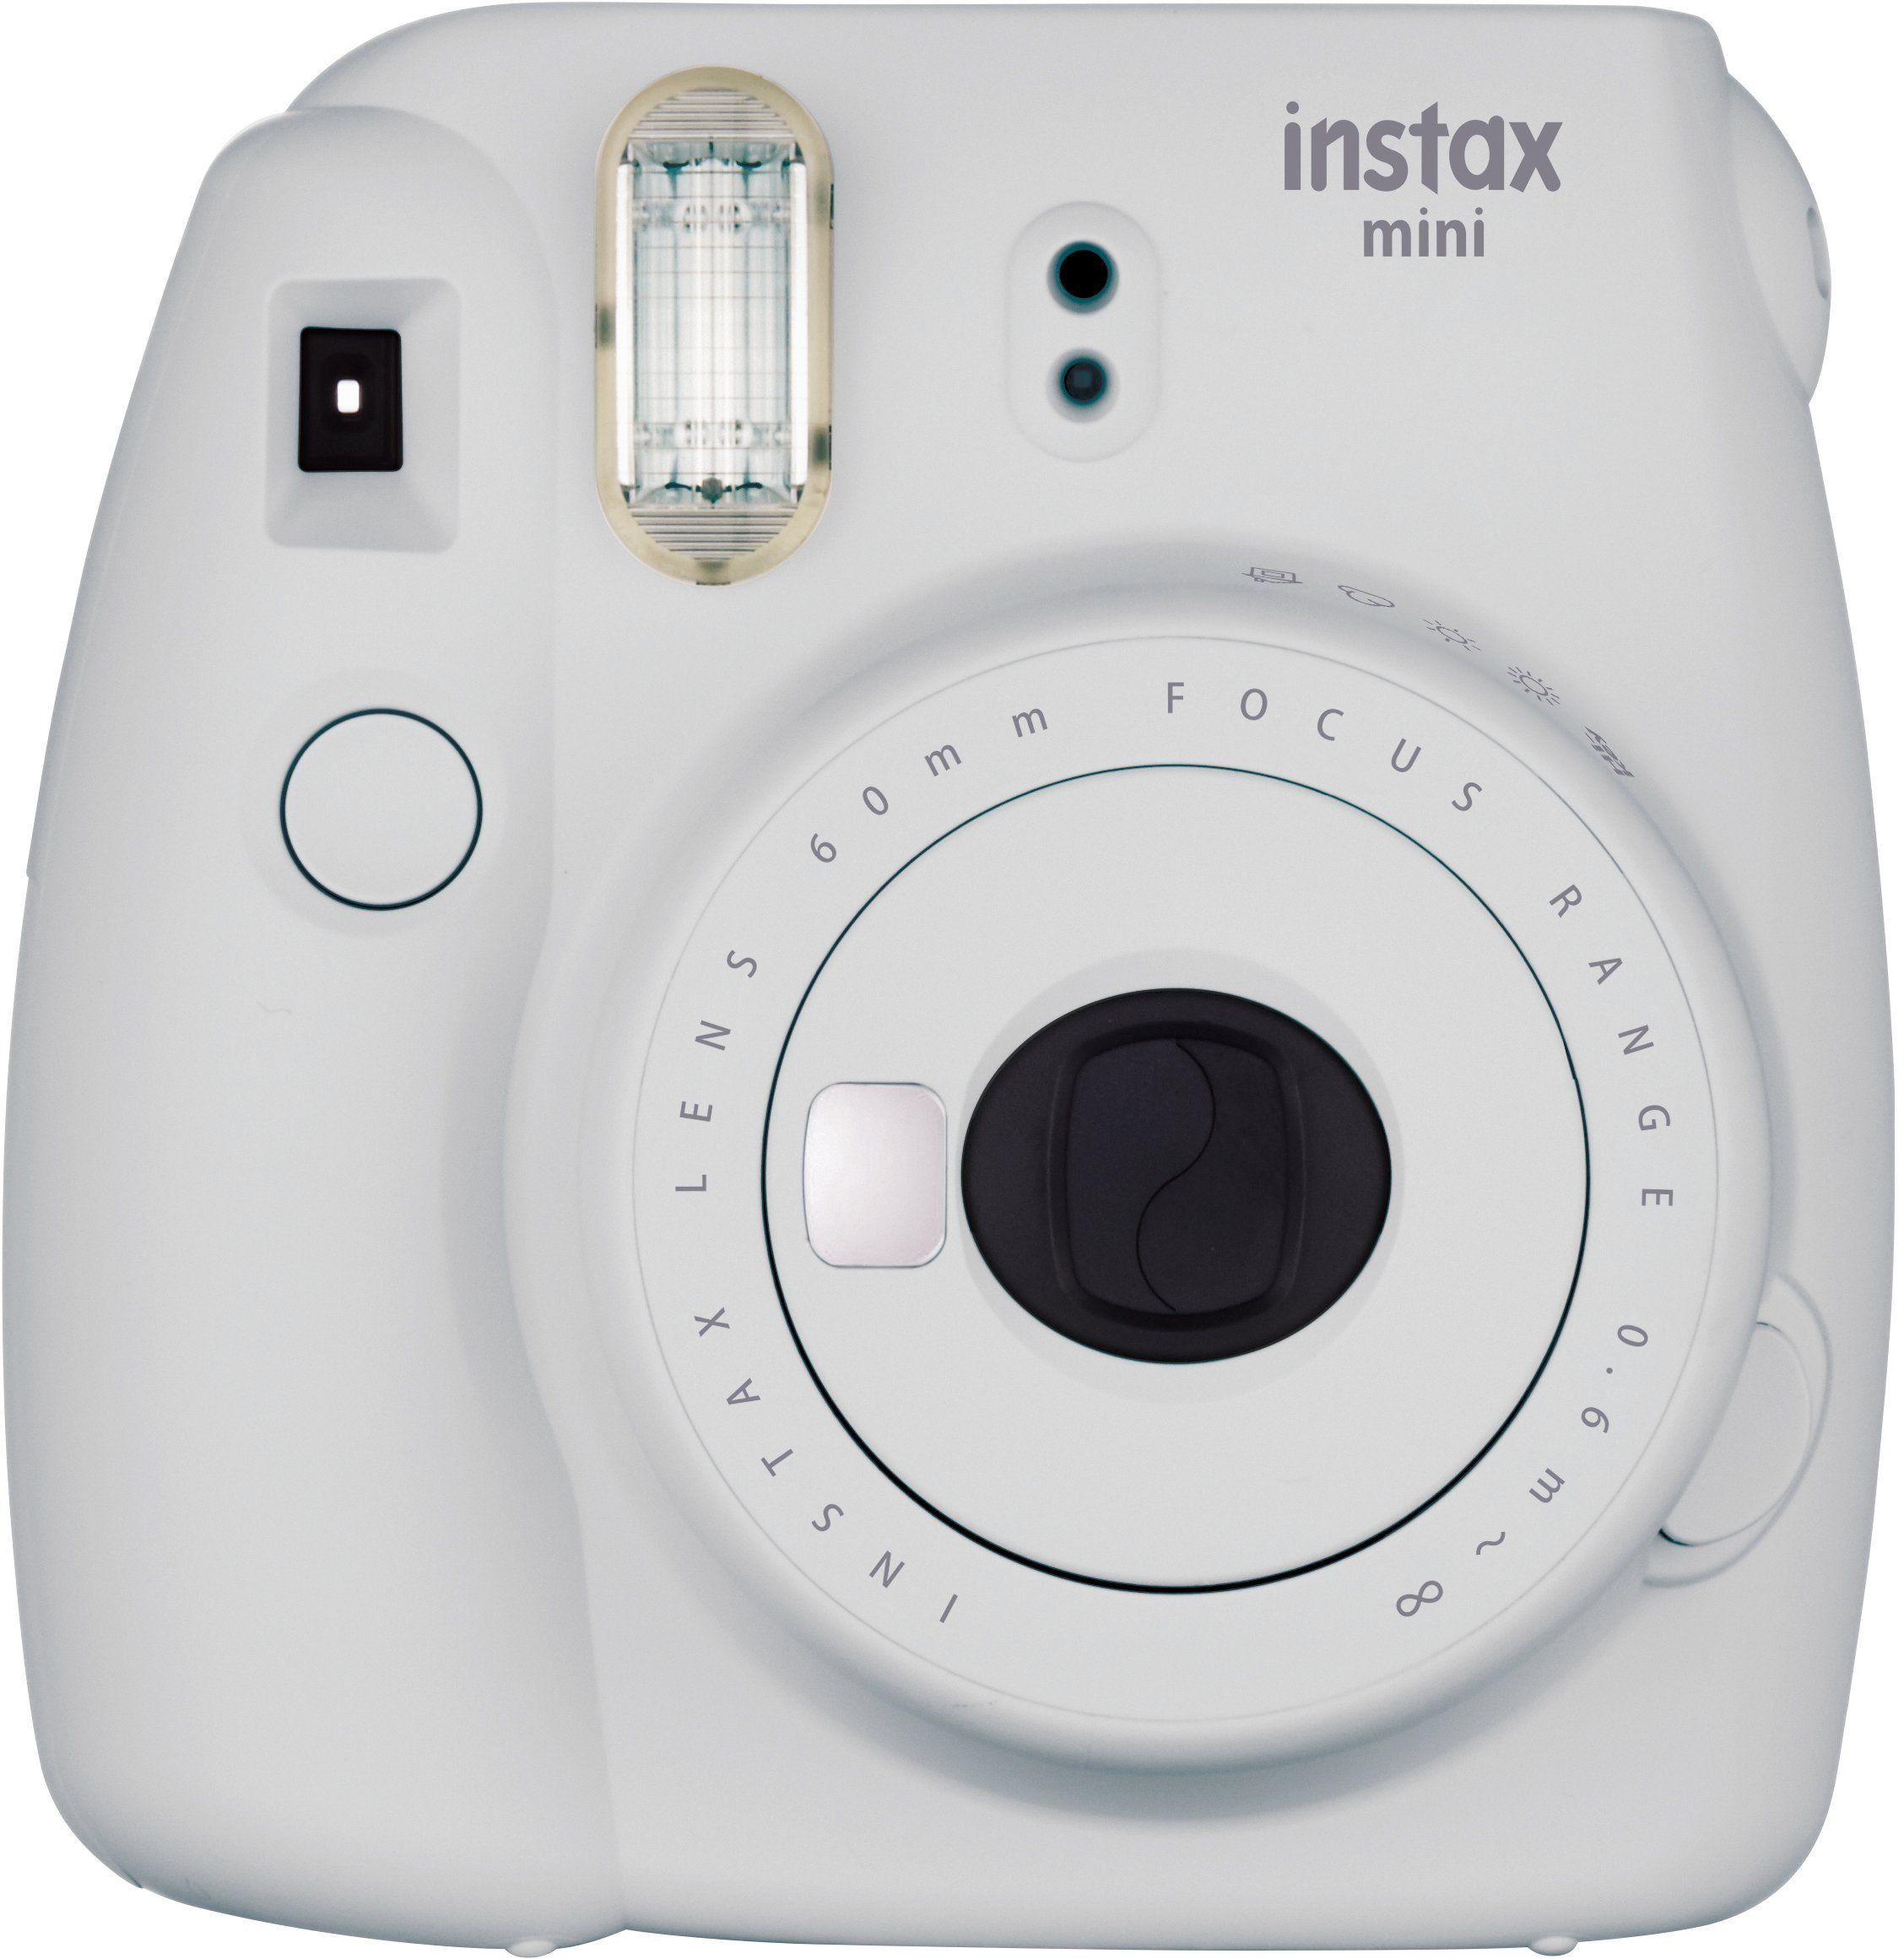 Fujifilm Instax Mini 9 Instant Camera - Smokey White by Fujifilm